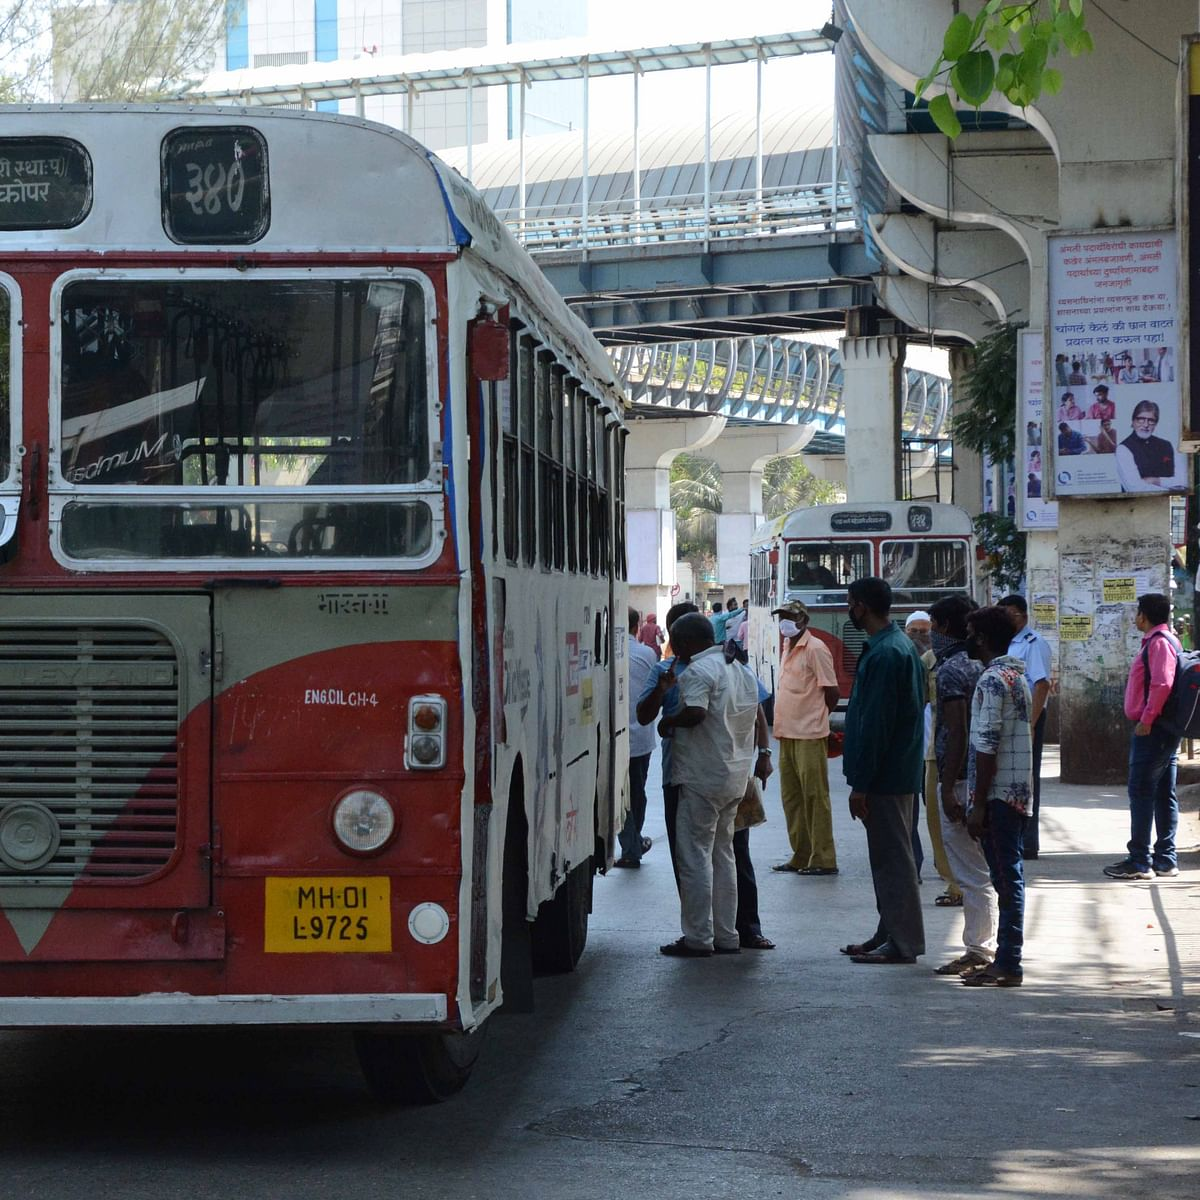 Coronavirus in Mumbai: BEST rifts over frequency of bus amidst shutdown